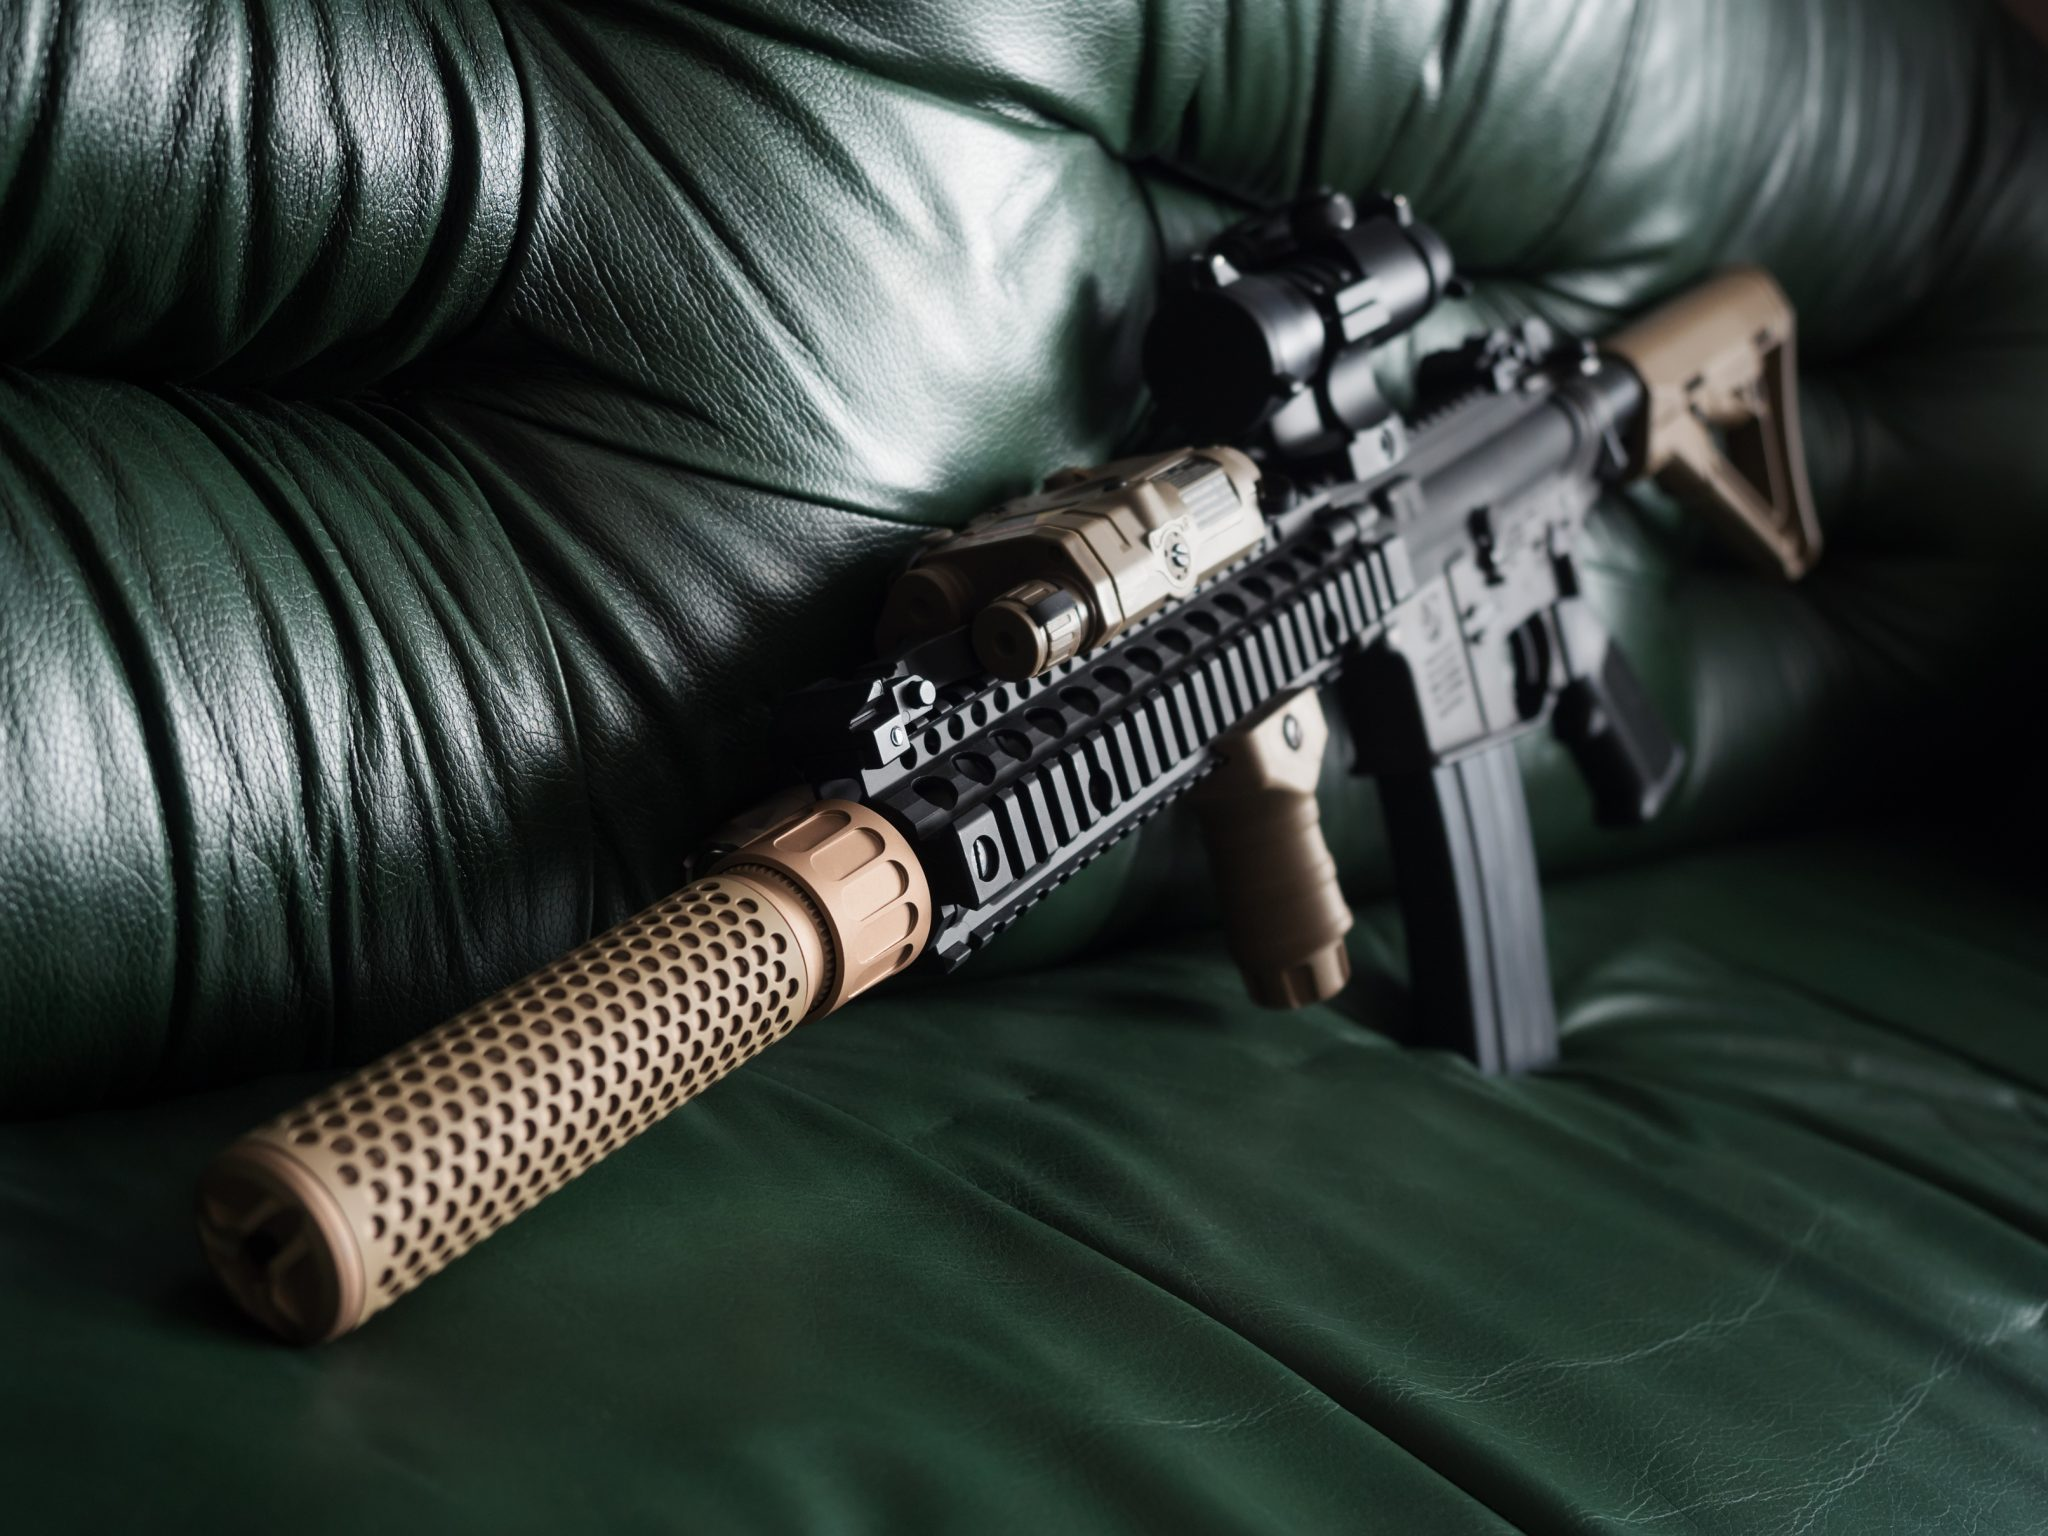 Black Rifle with suppressor On Sofa to illustrate how to buy a suppressor